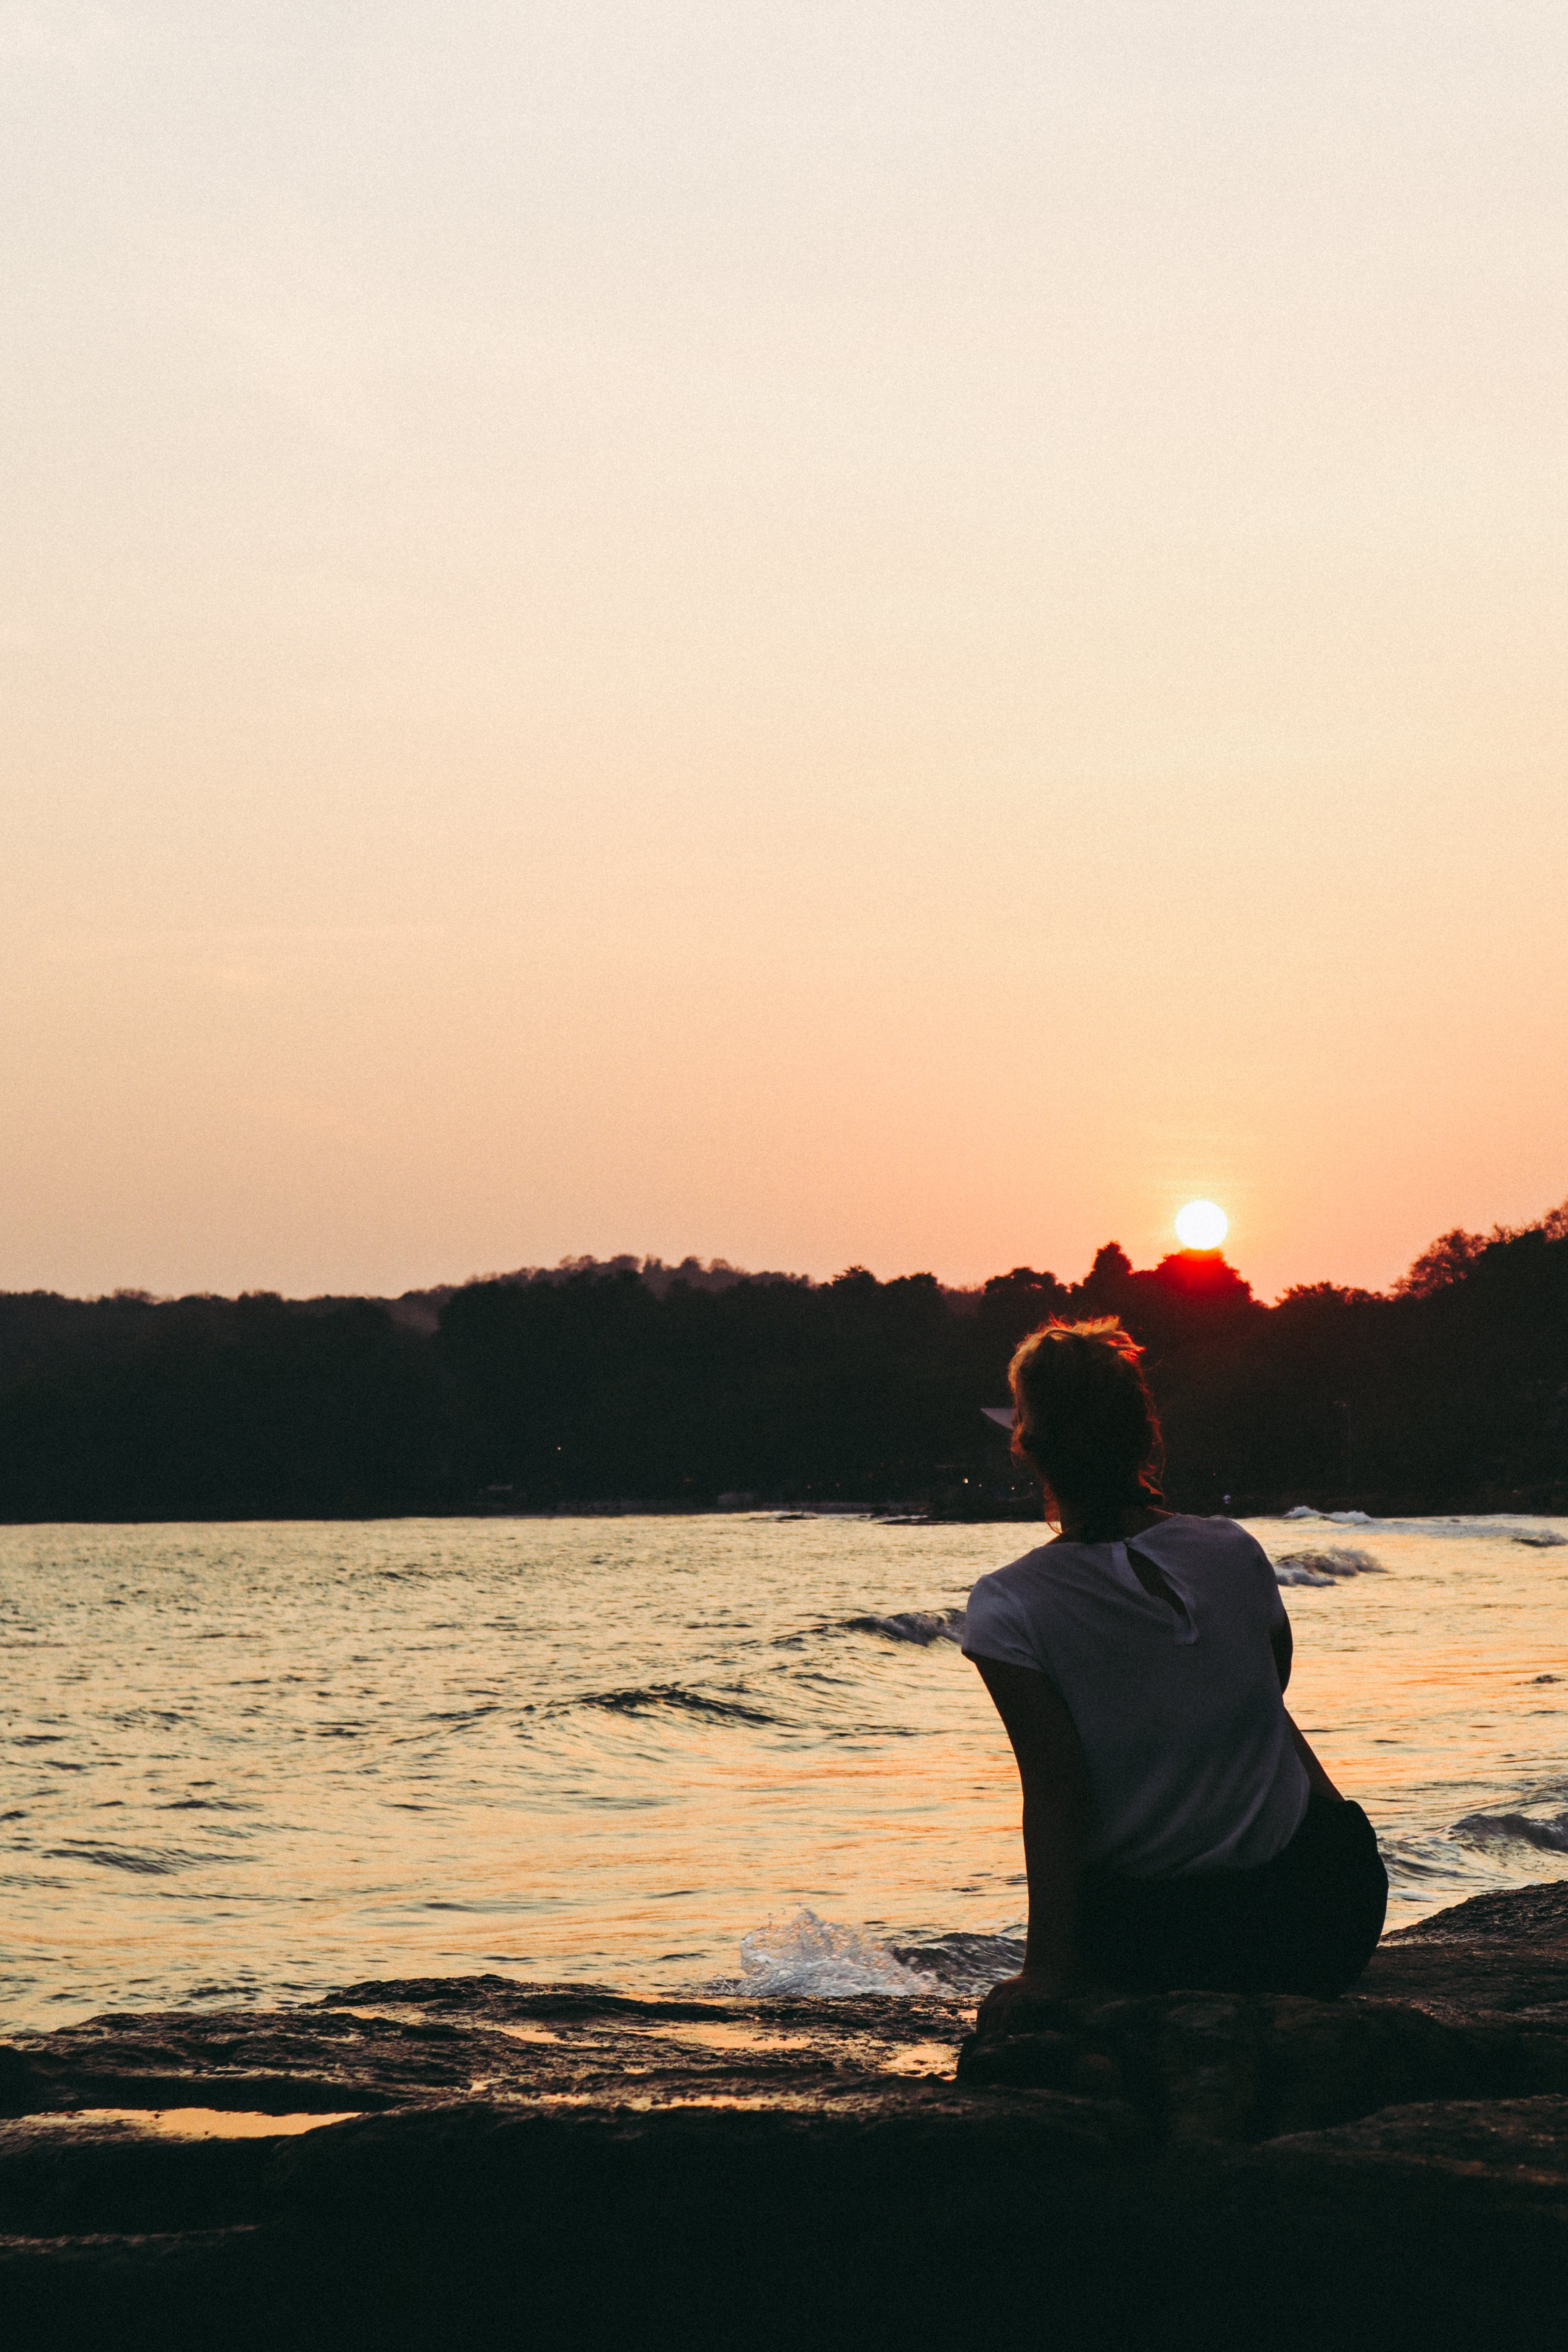 Woman Seated on a Rock Watching the Sunset